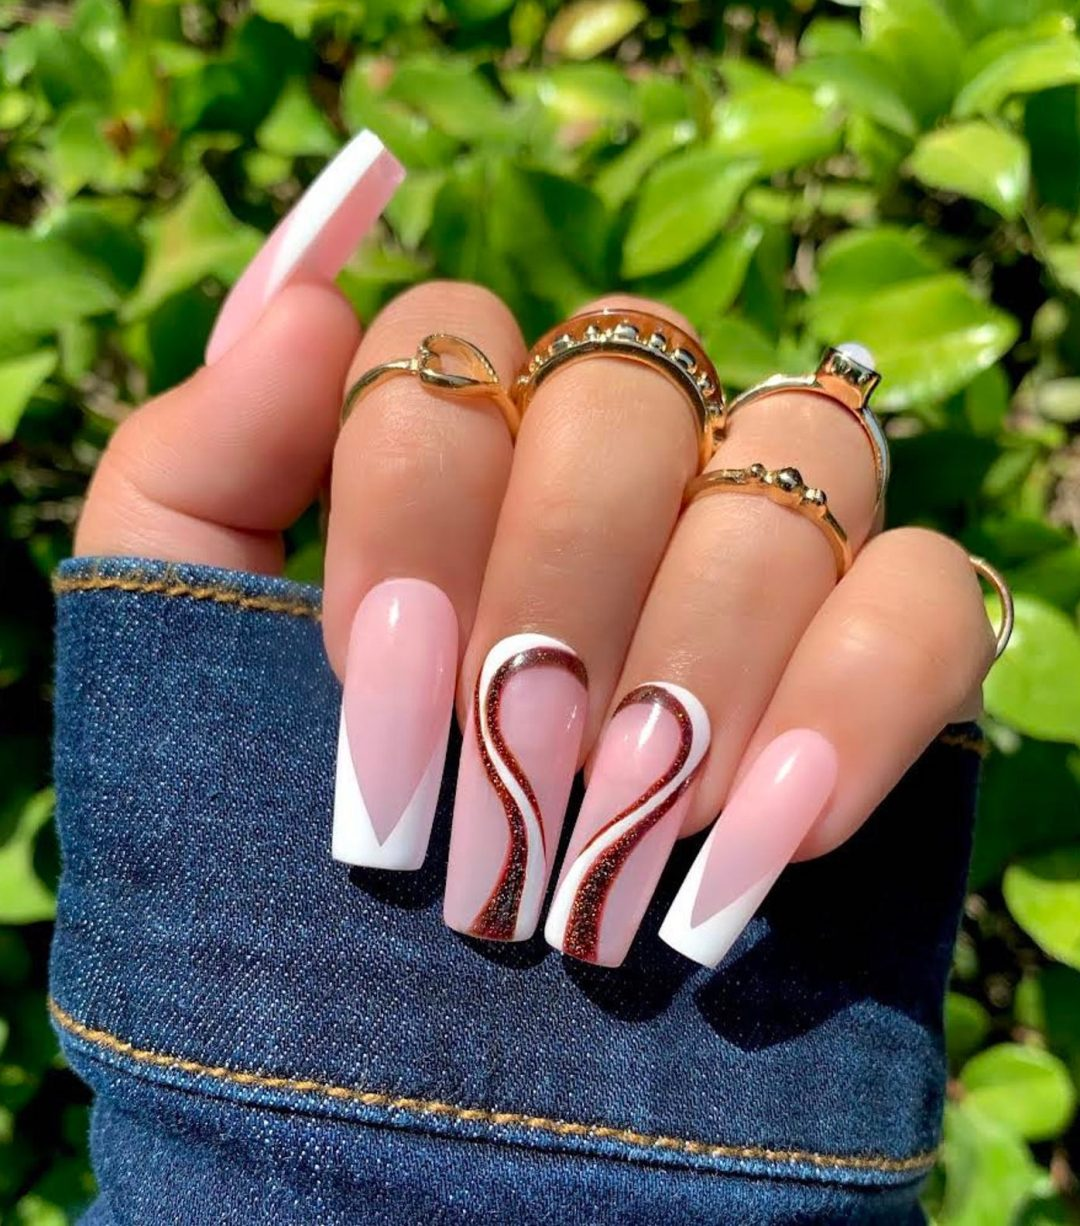 White French tip nails with brown hearts